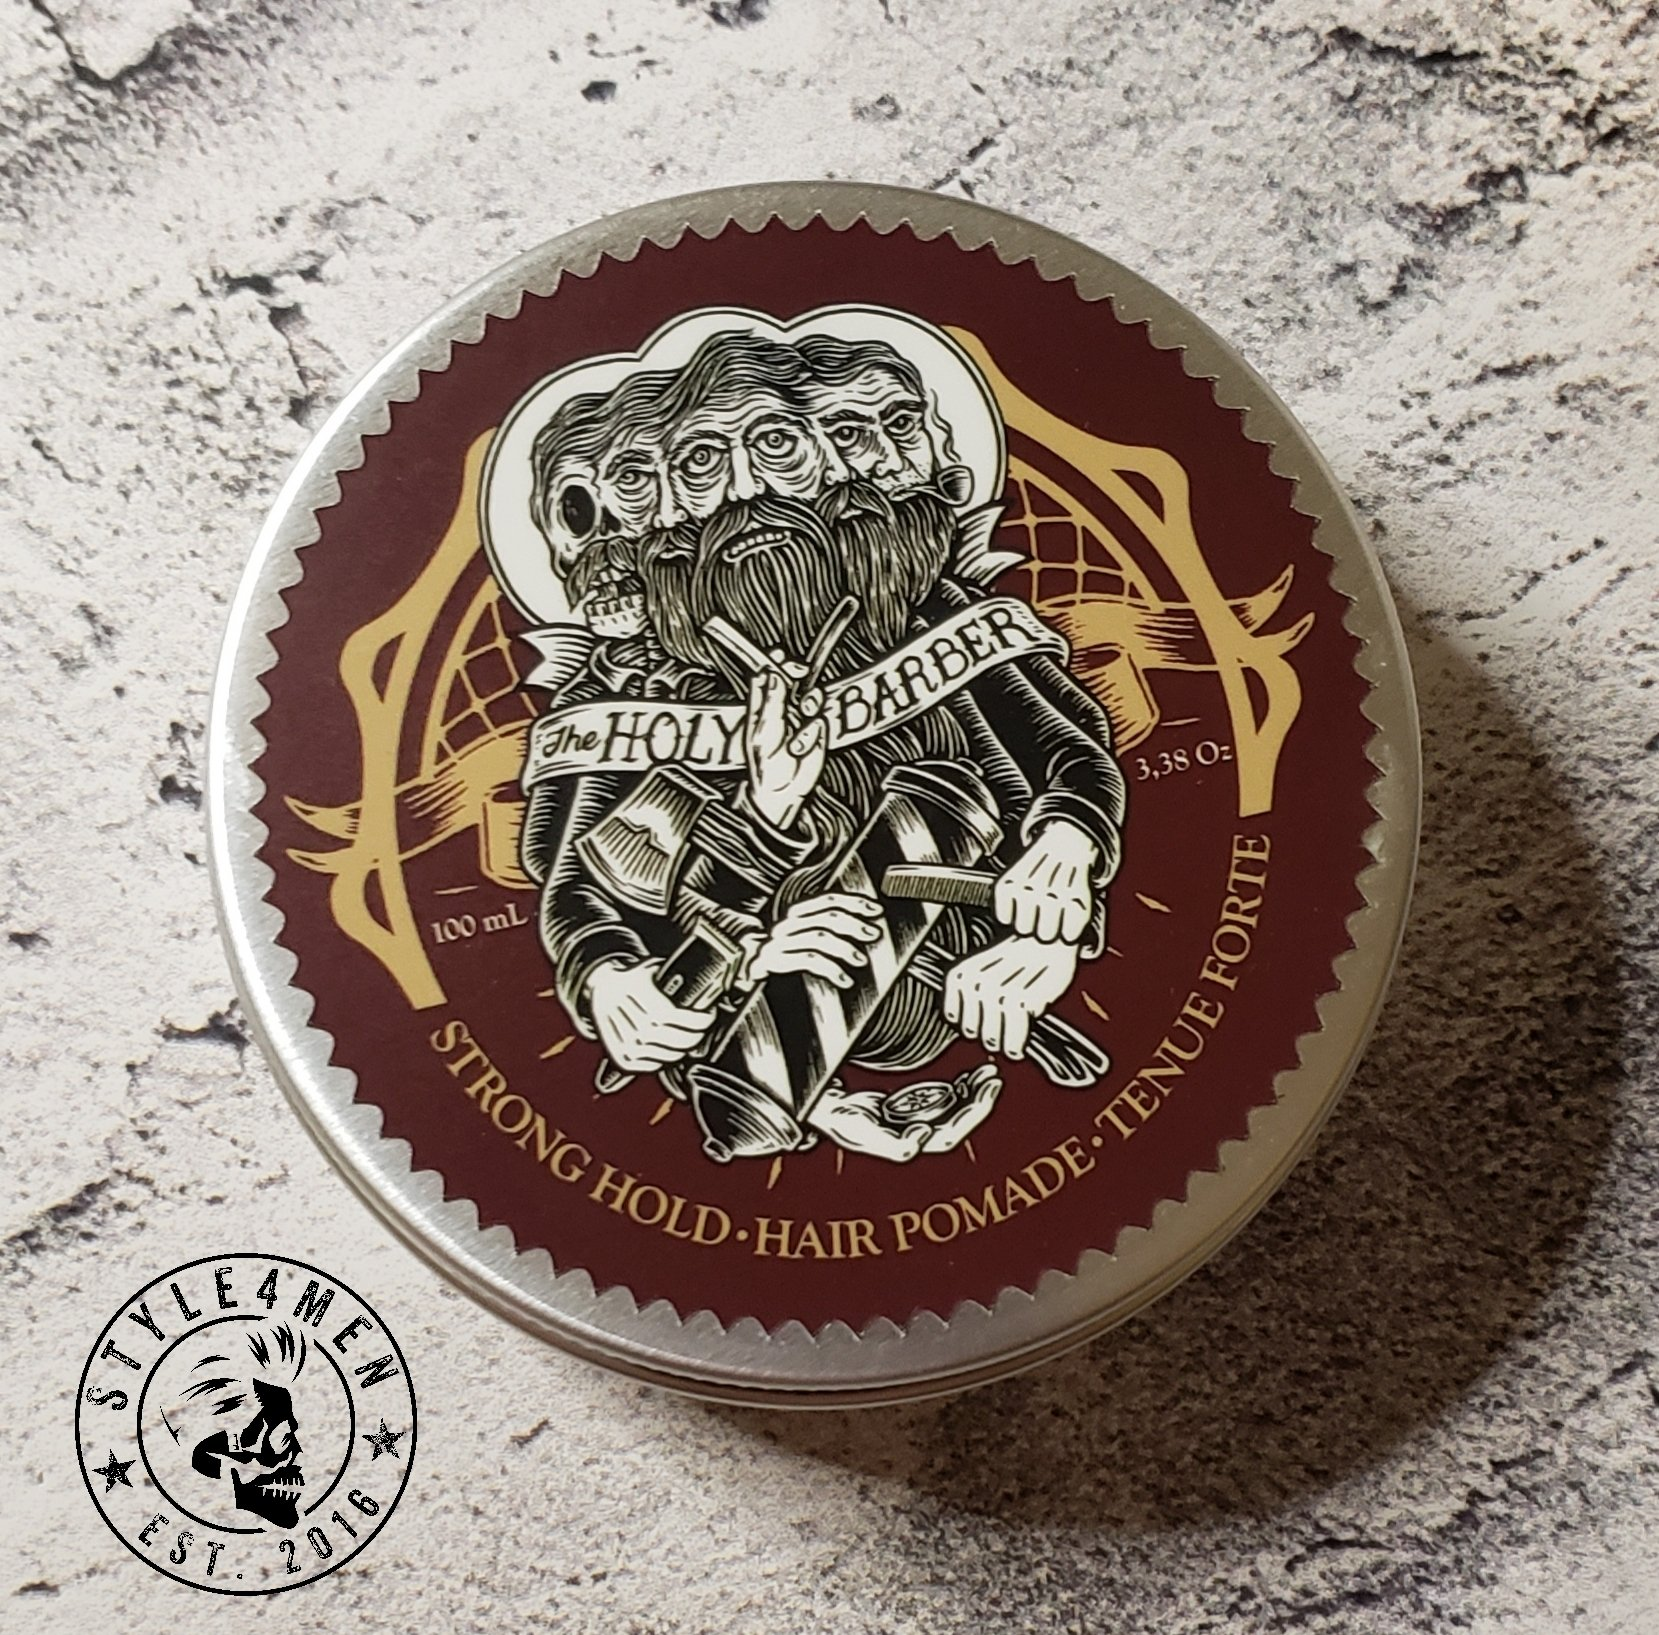 Hair Pomade by the Holy Barber